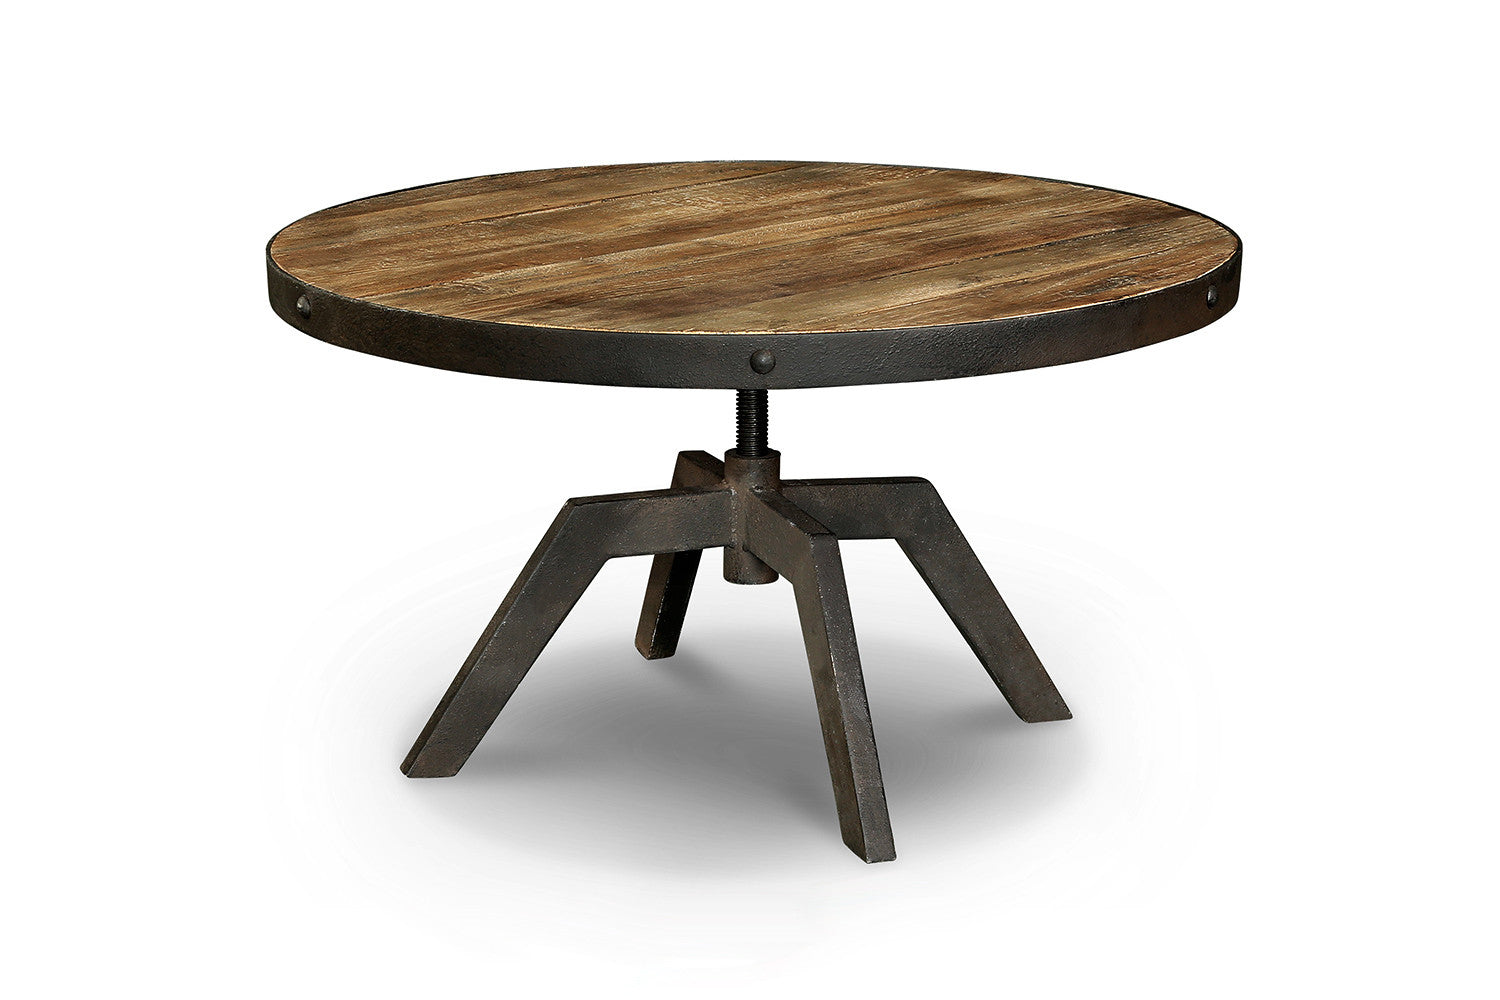 Table basse industrielle en bois et m tal tb03 rose moore - Table basse bois pied metal ...